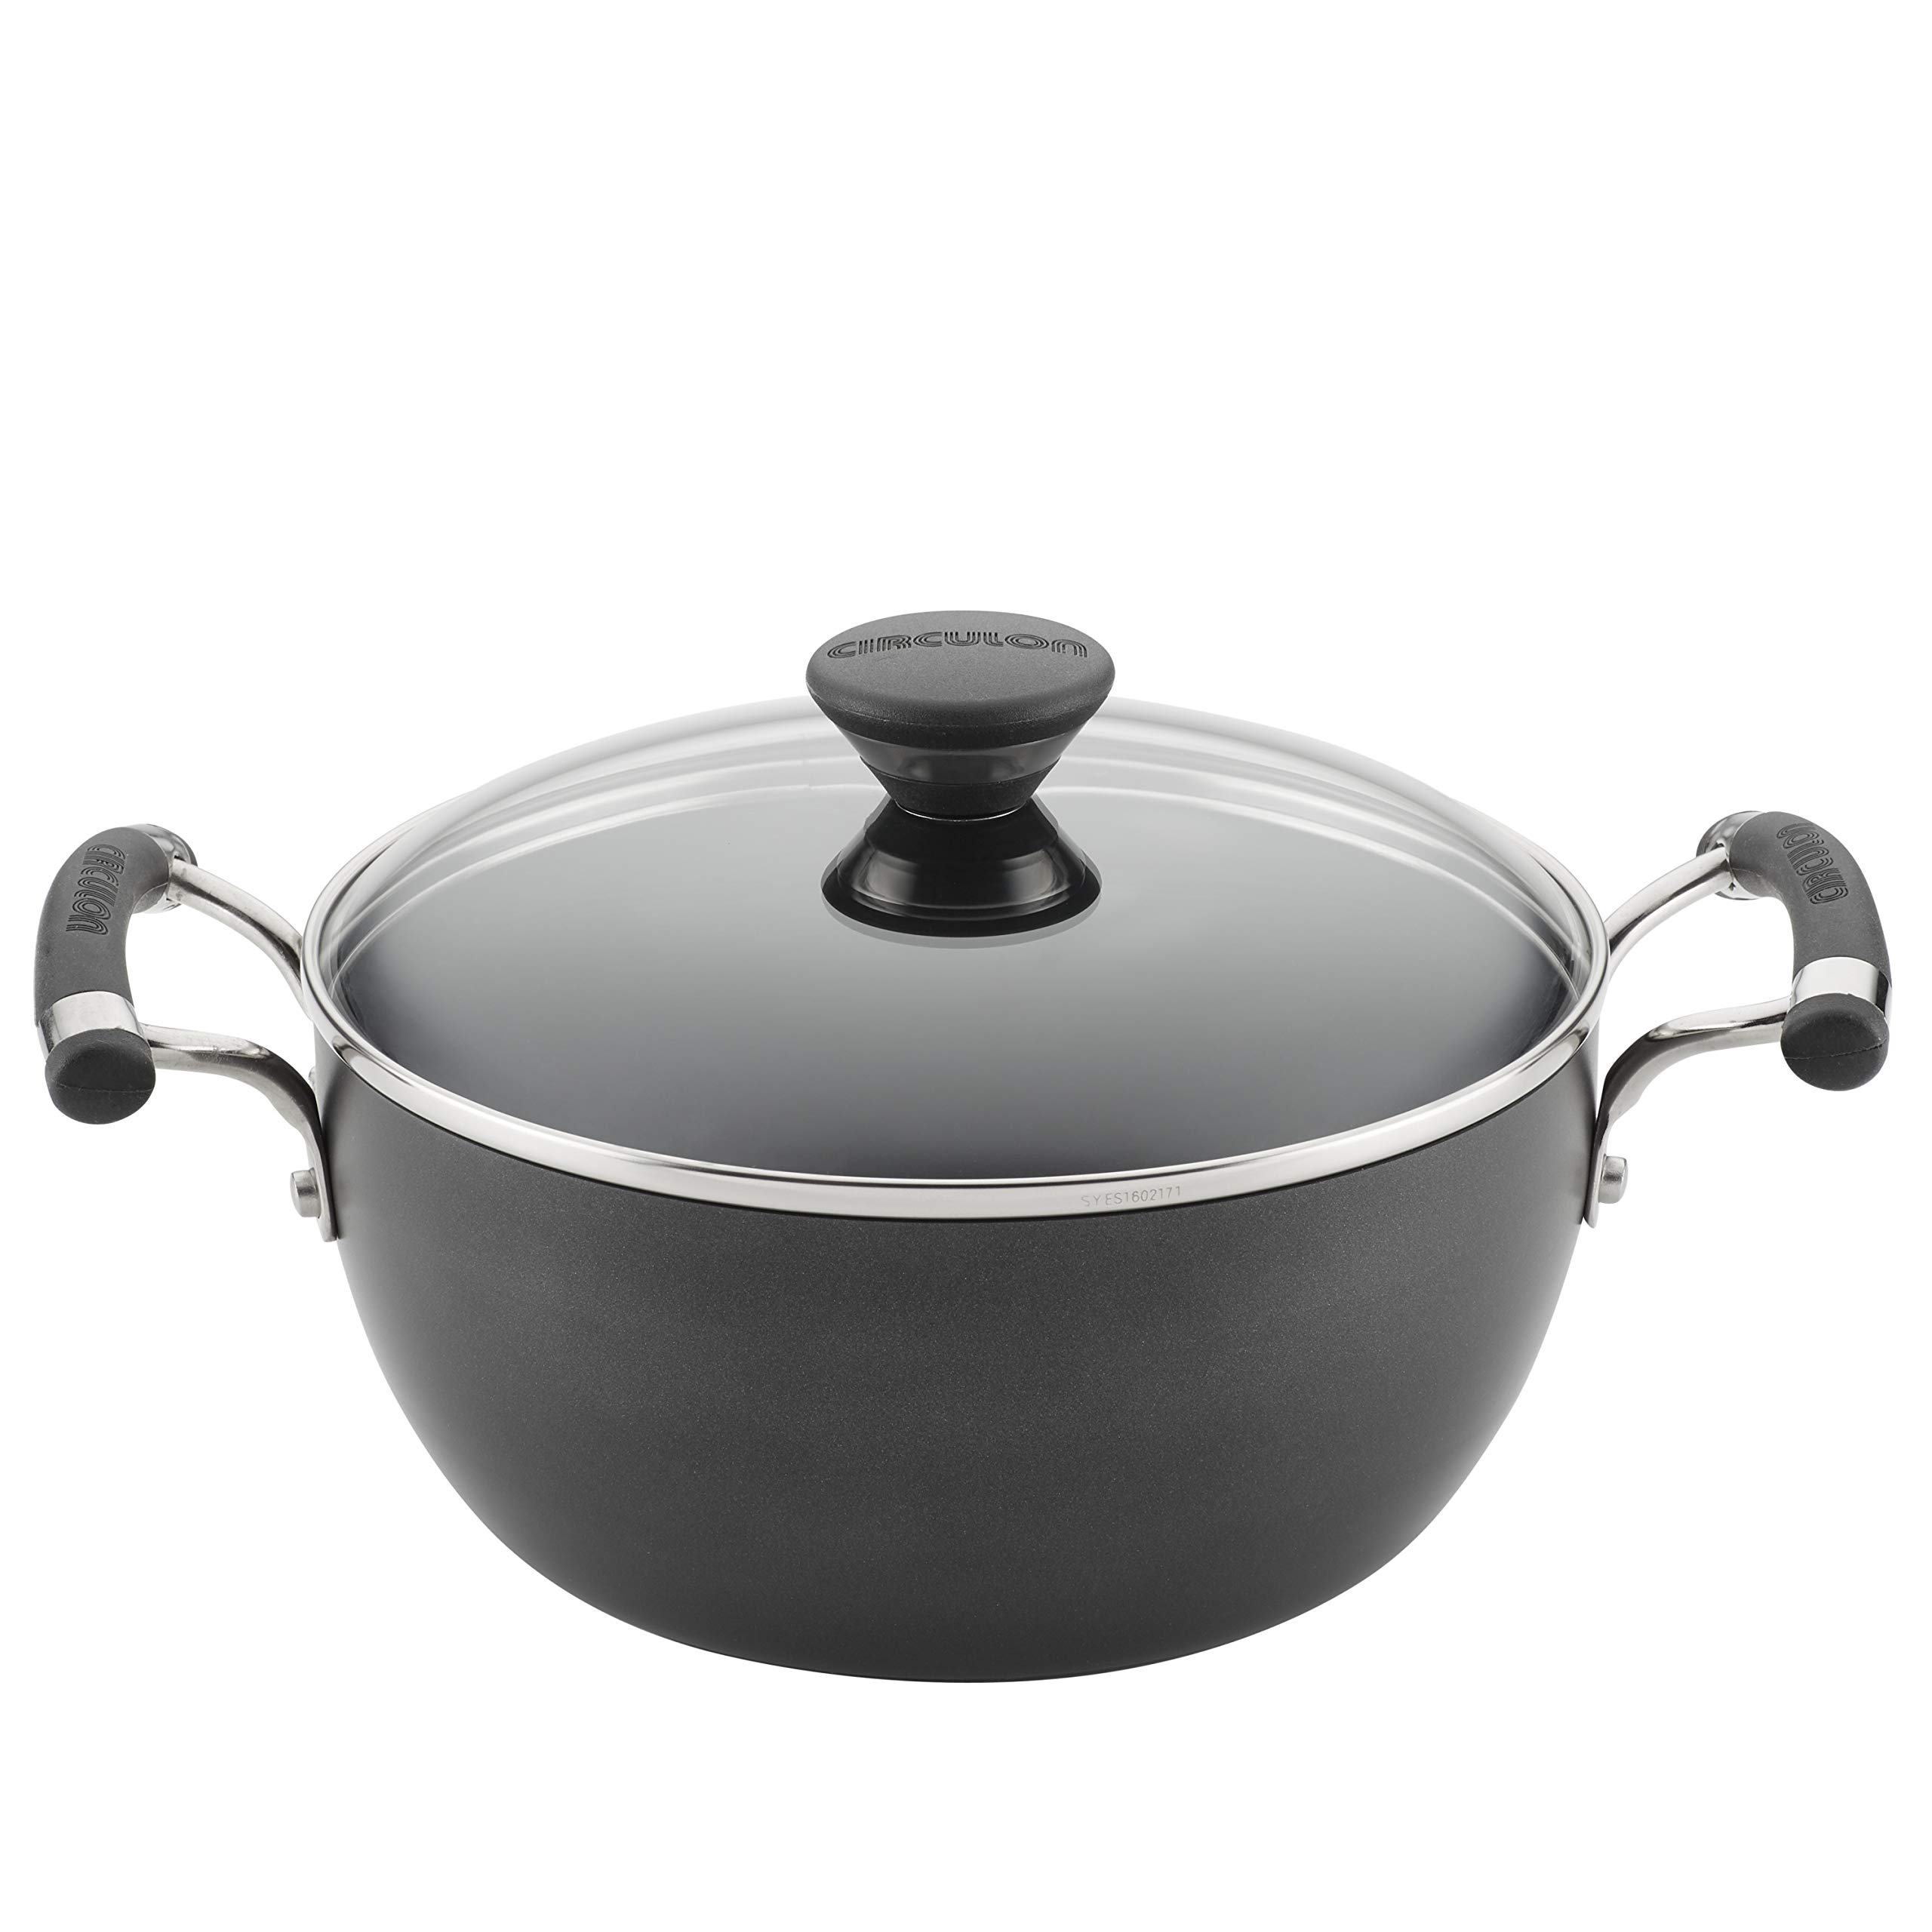 Circulon Acclaim Hard-Anodized Nonstick 4.5-Quart Covered Casserole by Circulon (Image #1)